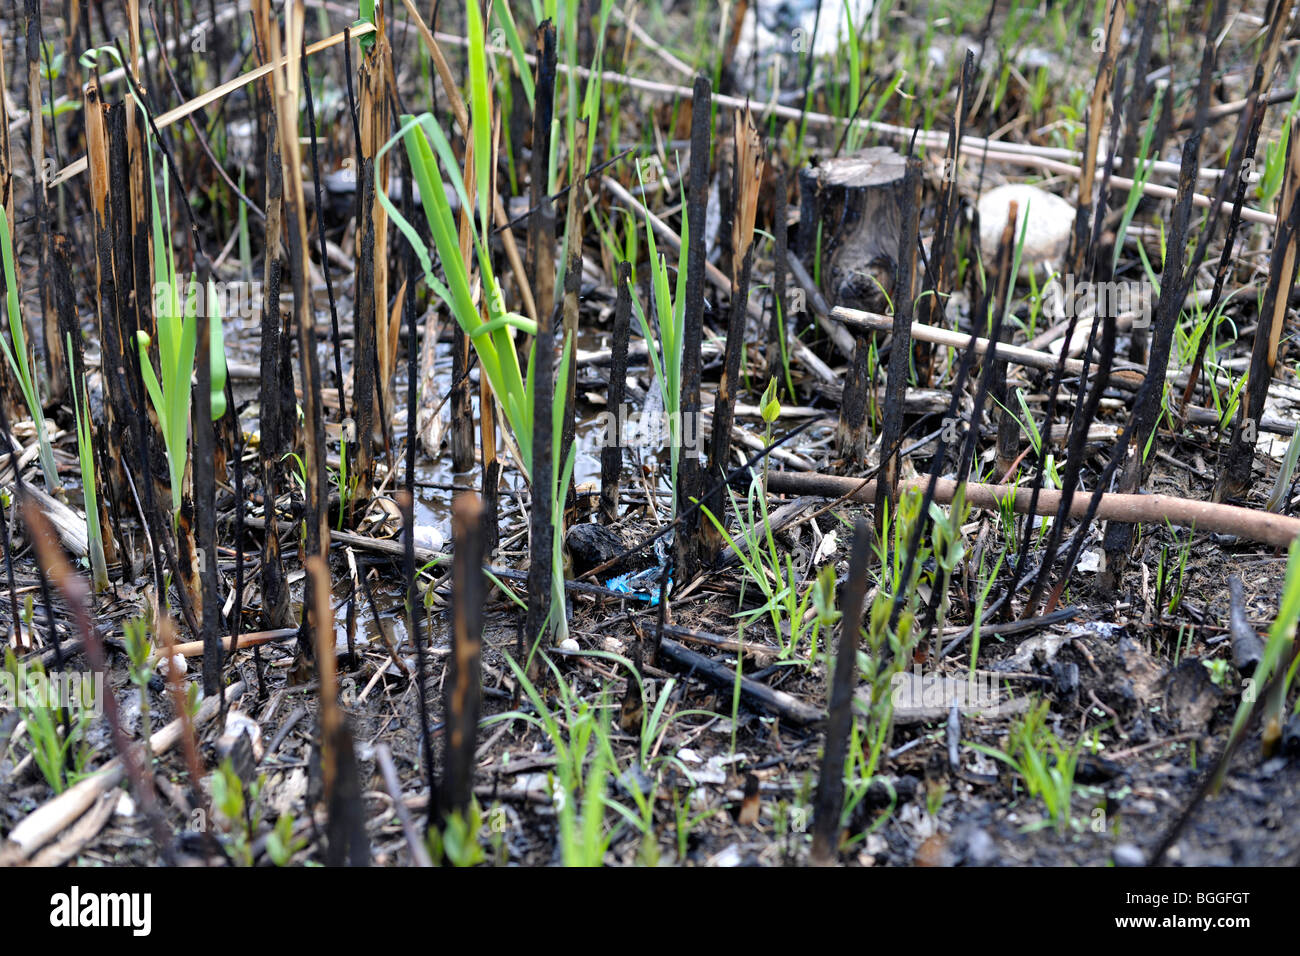 new plant growth after fire - Stock Image